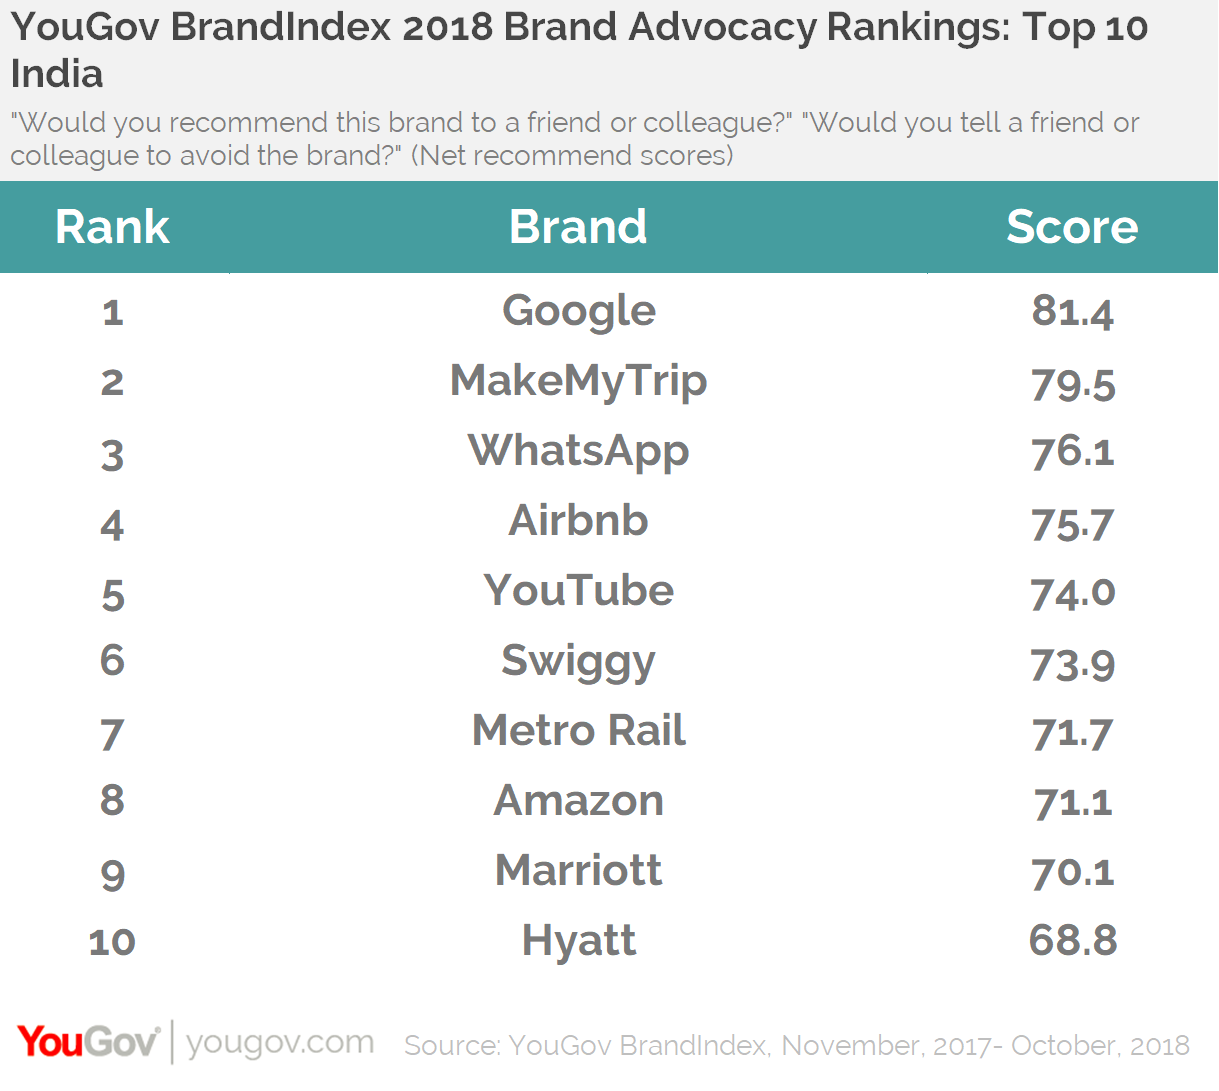 YouGov BrandIndex 2018 Brand Advocacy Rankings: Top 10 India